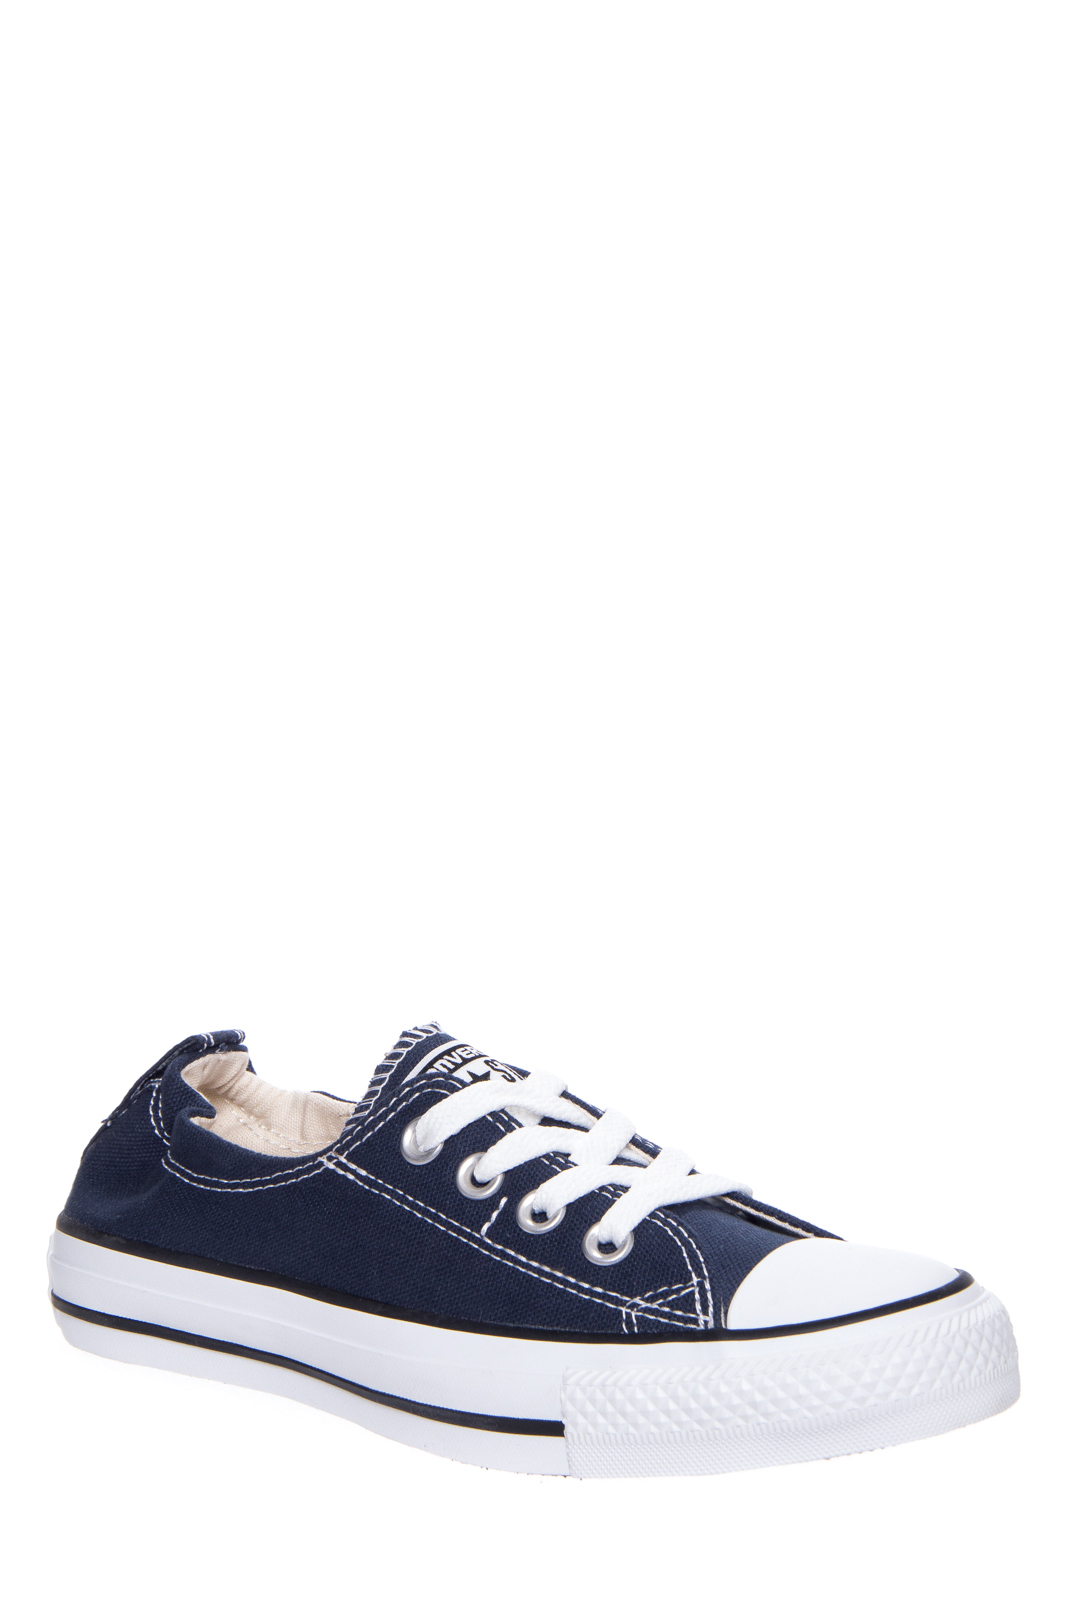 0e08753d184c ... UPC 886951911097 product image for Converse Women s Chuck Taylor  Shoreline Slip On Sneaker - Athletic Navy